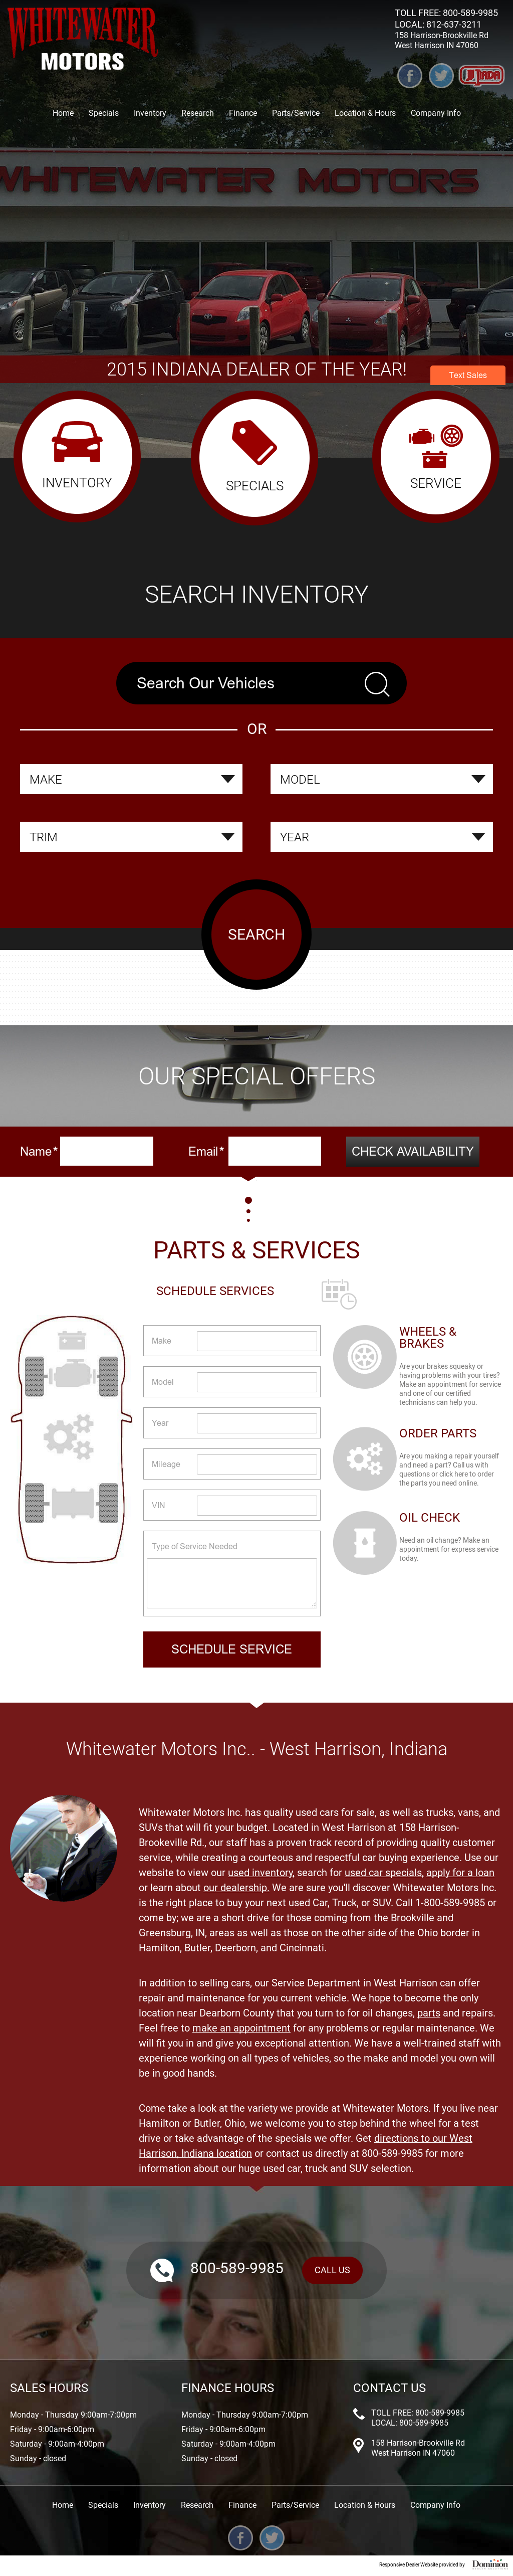 Whitewater Motors Competitors, Revenue and Employees - Owler Company Profile